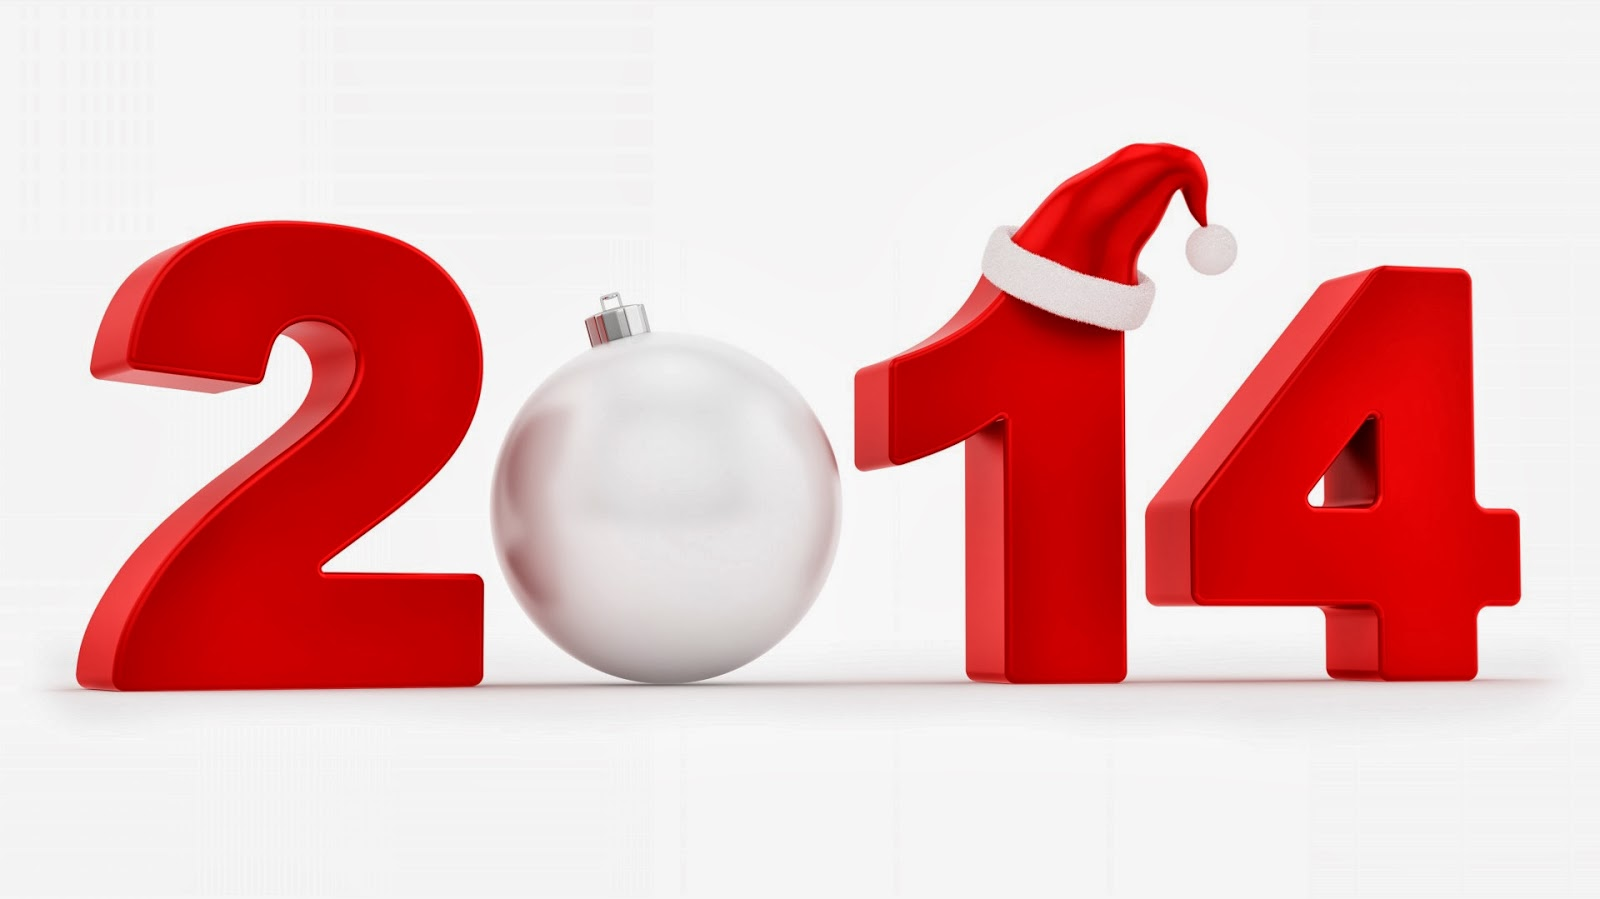 2014 wallpapers | hd wallpapers: happy new year wallpapers 2014